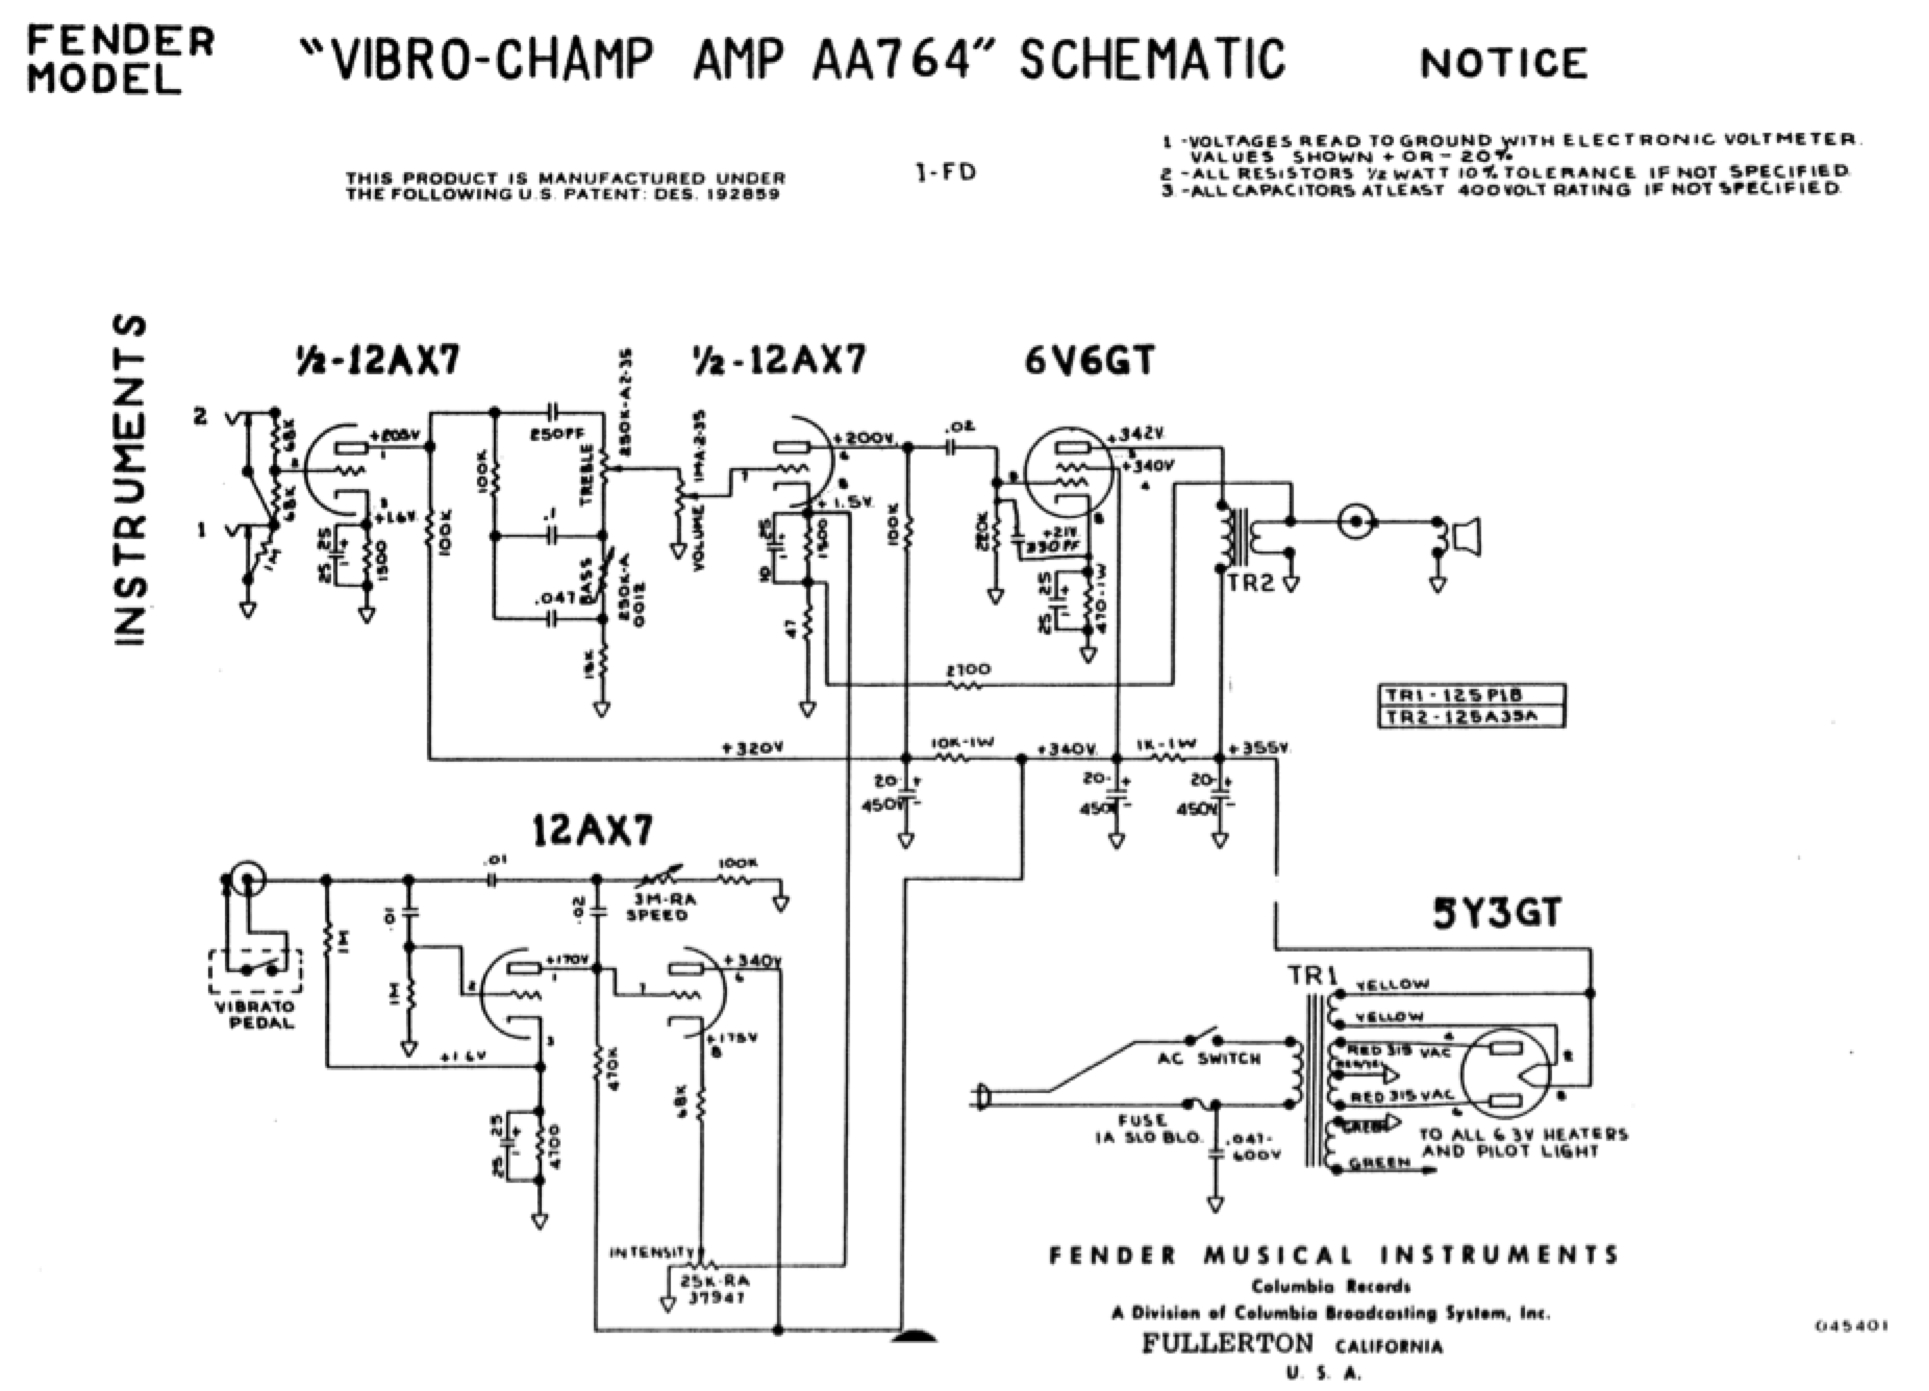 Fender champ wiring diagrams wiring diagram manual fender vibro champ amp aa764 iration audio fender champ wiring diagram fender vibro champ wiring diagram cheapraybanclubmaster Gallery